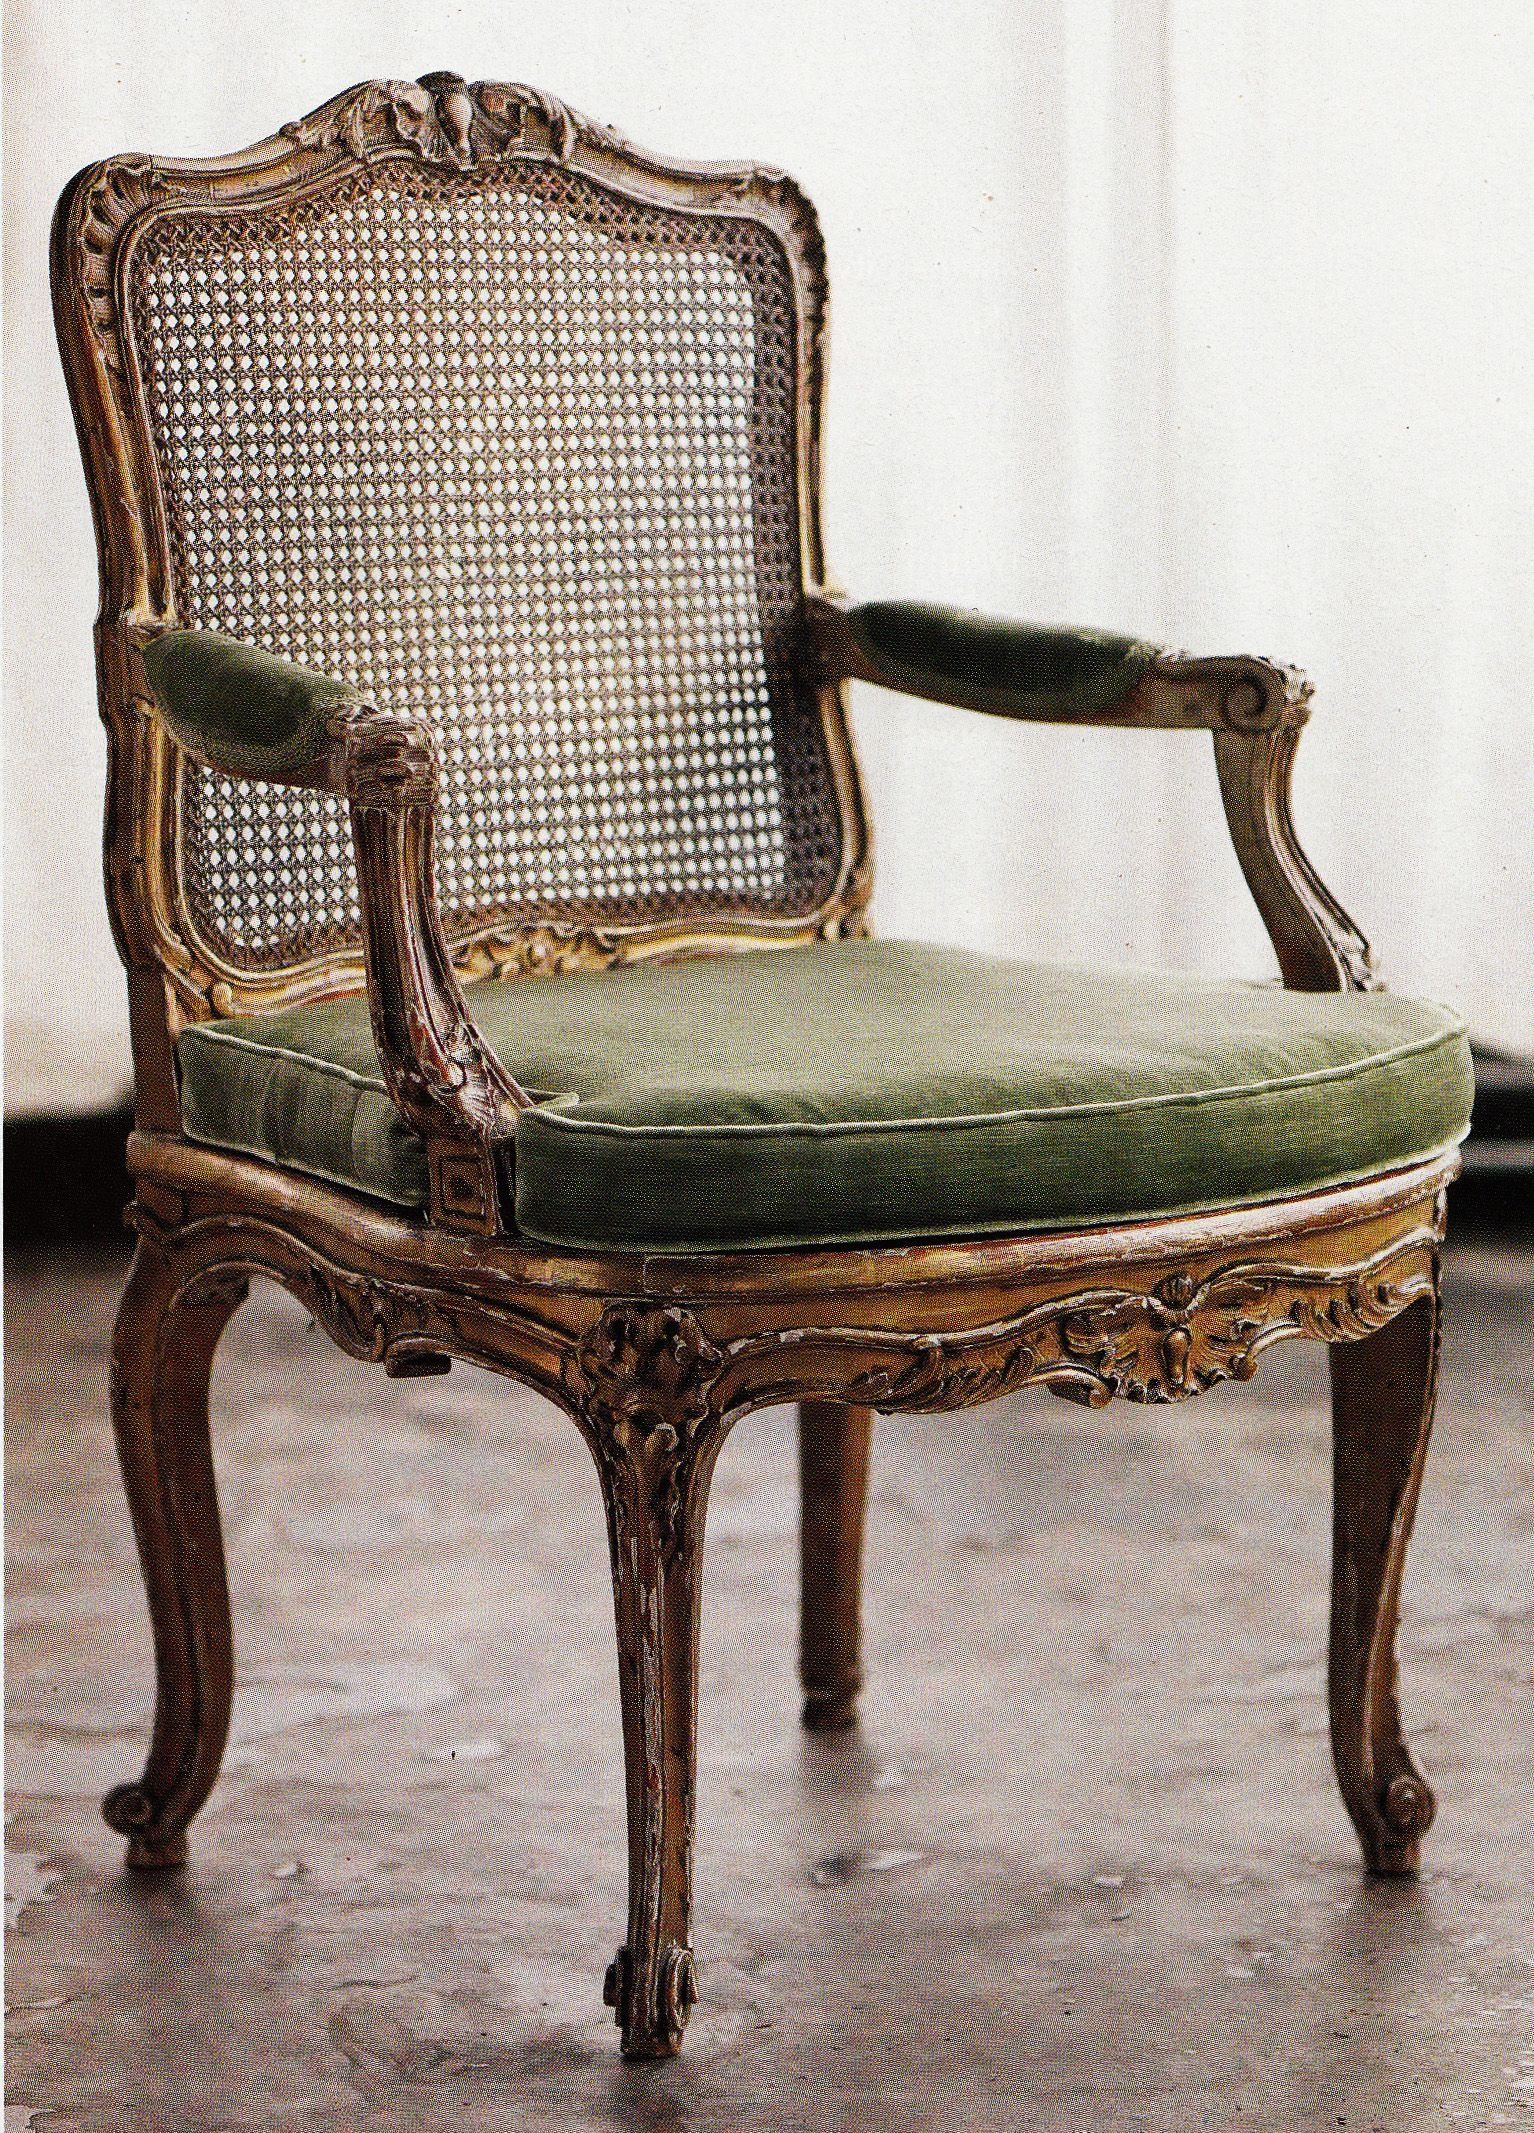 Circa 1880 Louis Xv Style Chair Antique French Furniture